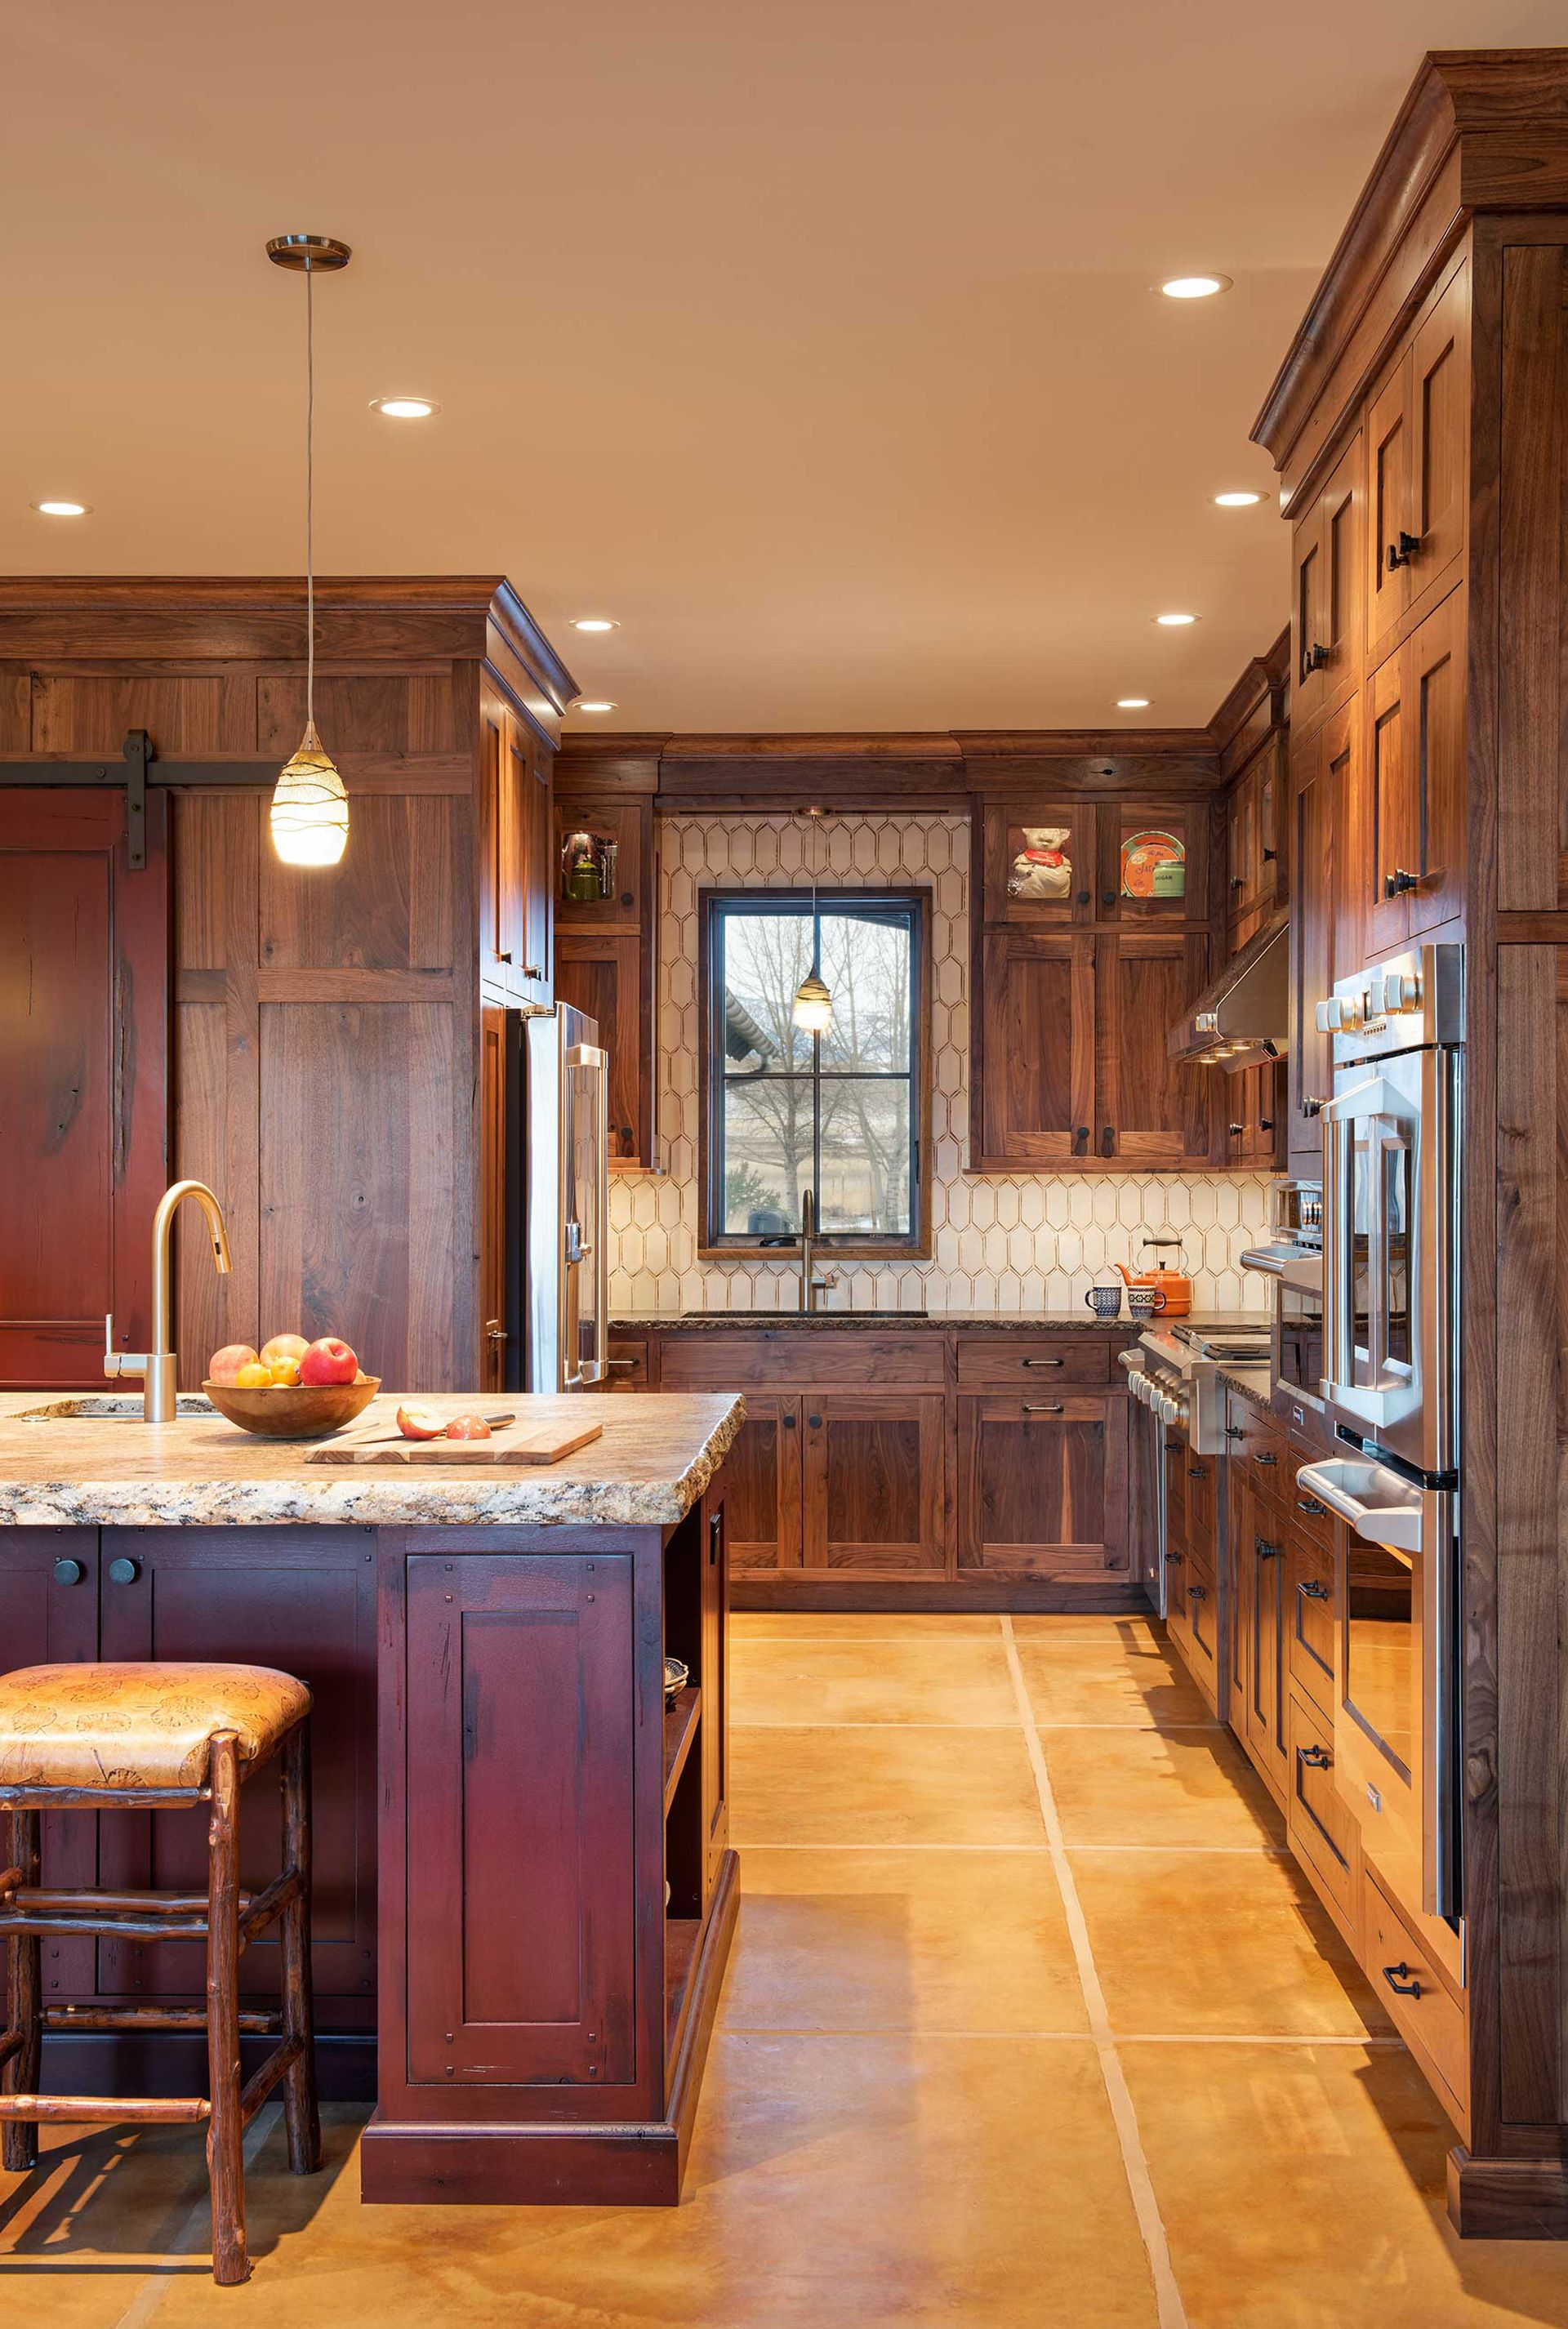 Rustic Kitchen Design With Walnut Cabinets In Mountain Home In 2020 Rustic Kitchen Design Walnut Cabinets Rustic Kitchen